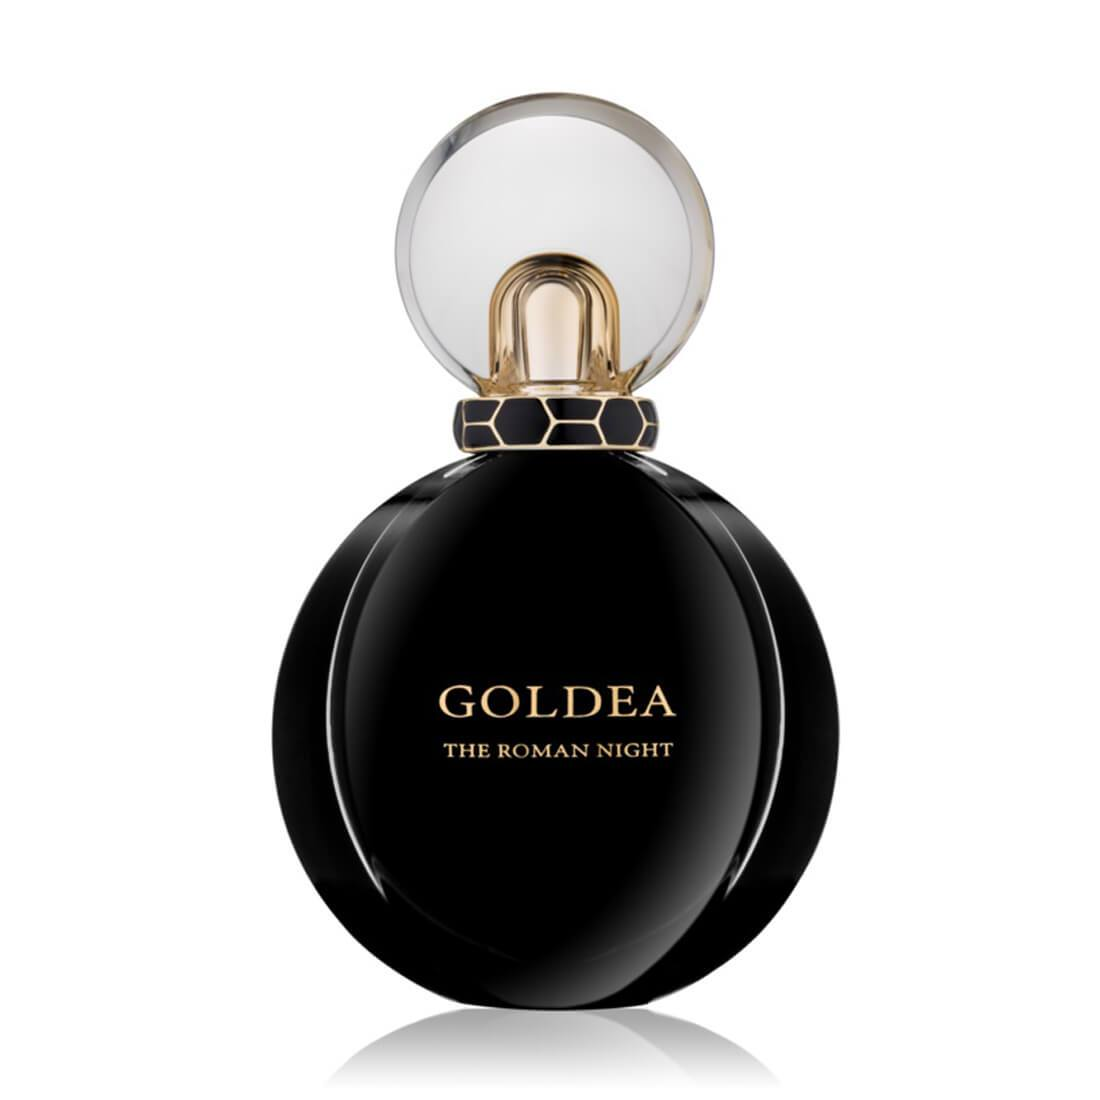 Bvlgari Goldea The Roman Night EDP Perfume - 75ml